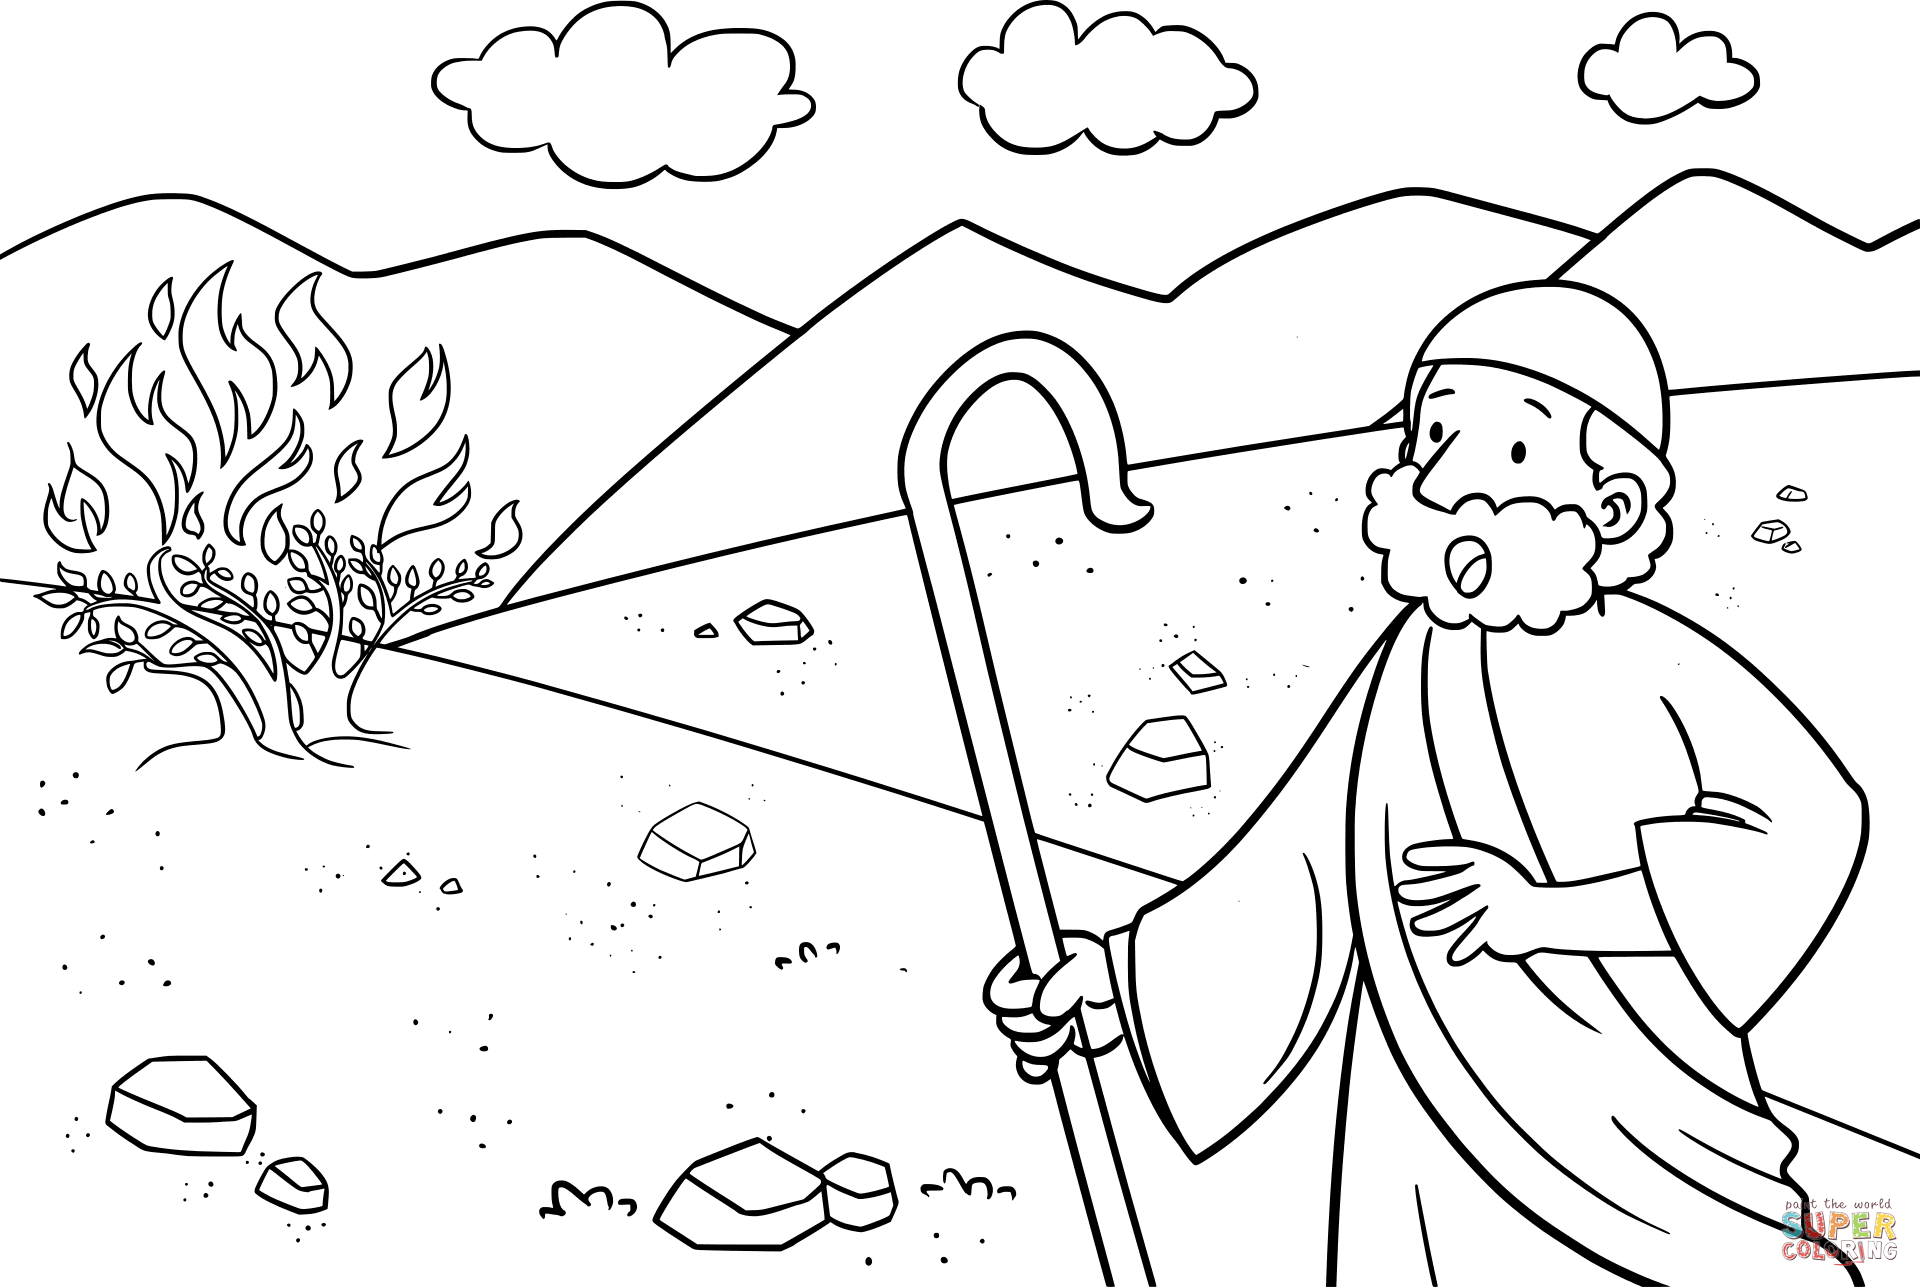 moses coloring pages free printable moses coloring pages for kids coloring pages moses